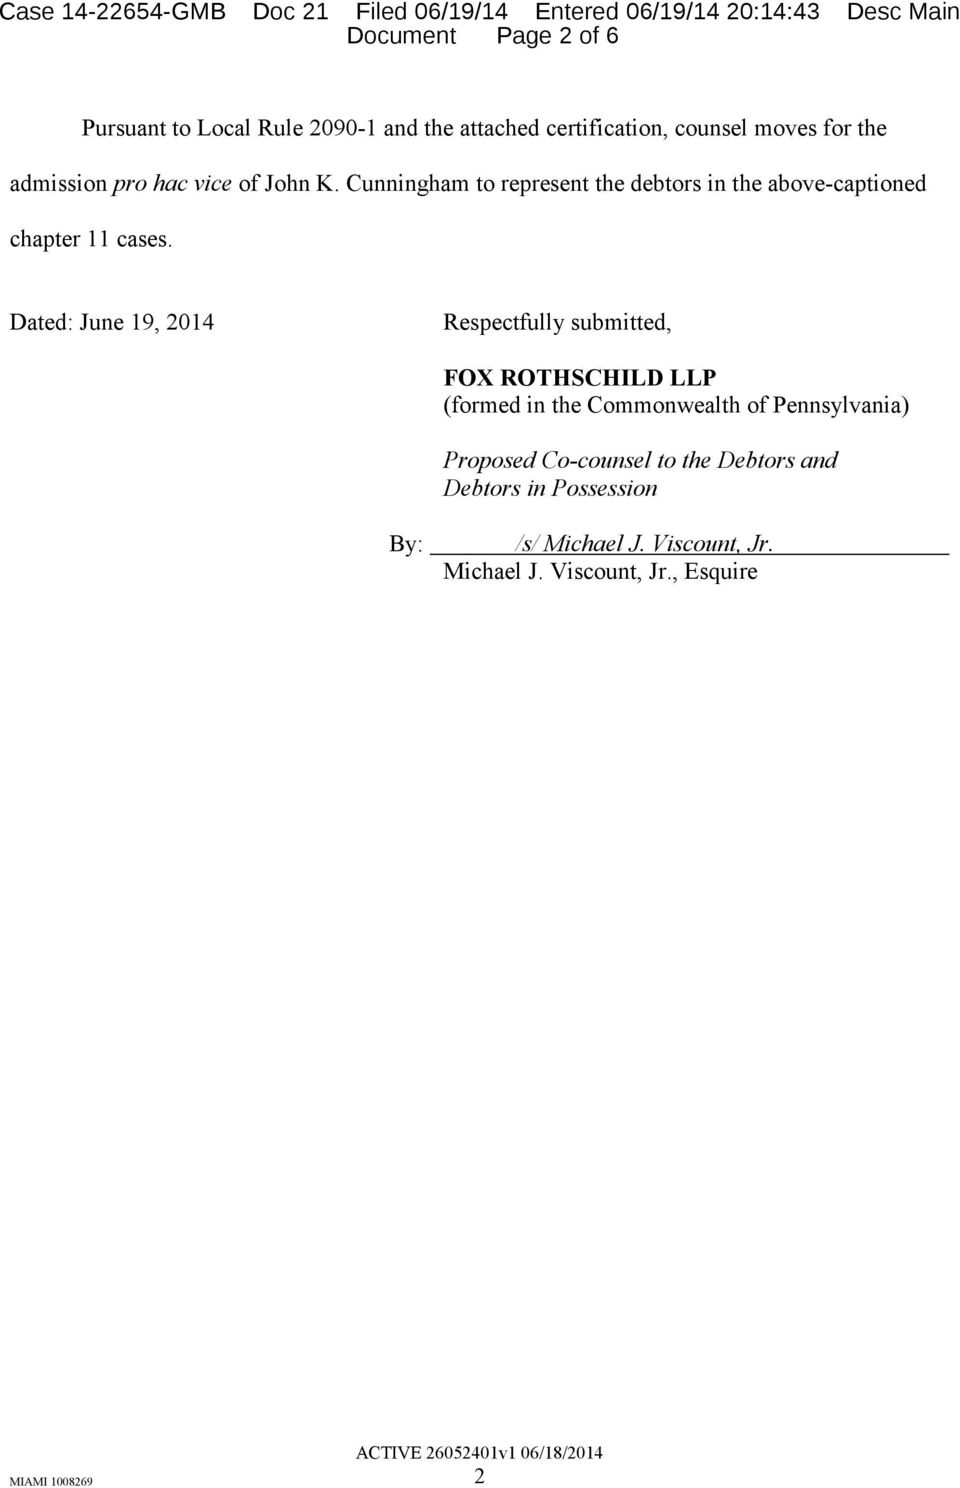 Dated: June 19, 2014 Respectfully submitted, FOX ROTHSCHILD LLP (formed in the Commonwealth of Pennsylvania)